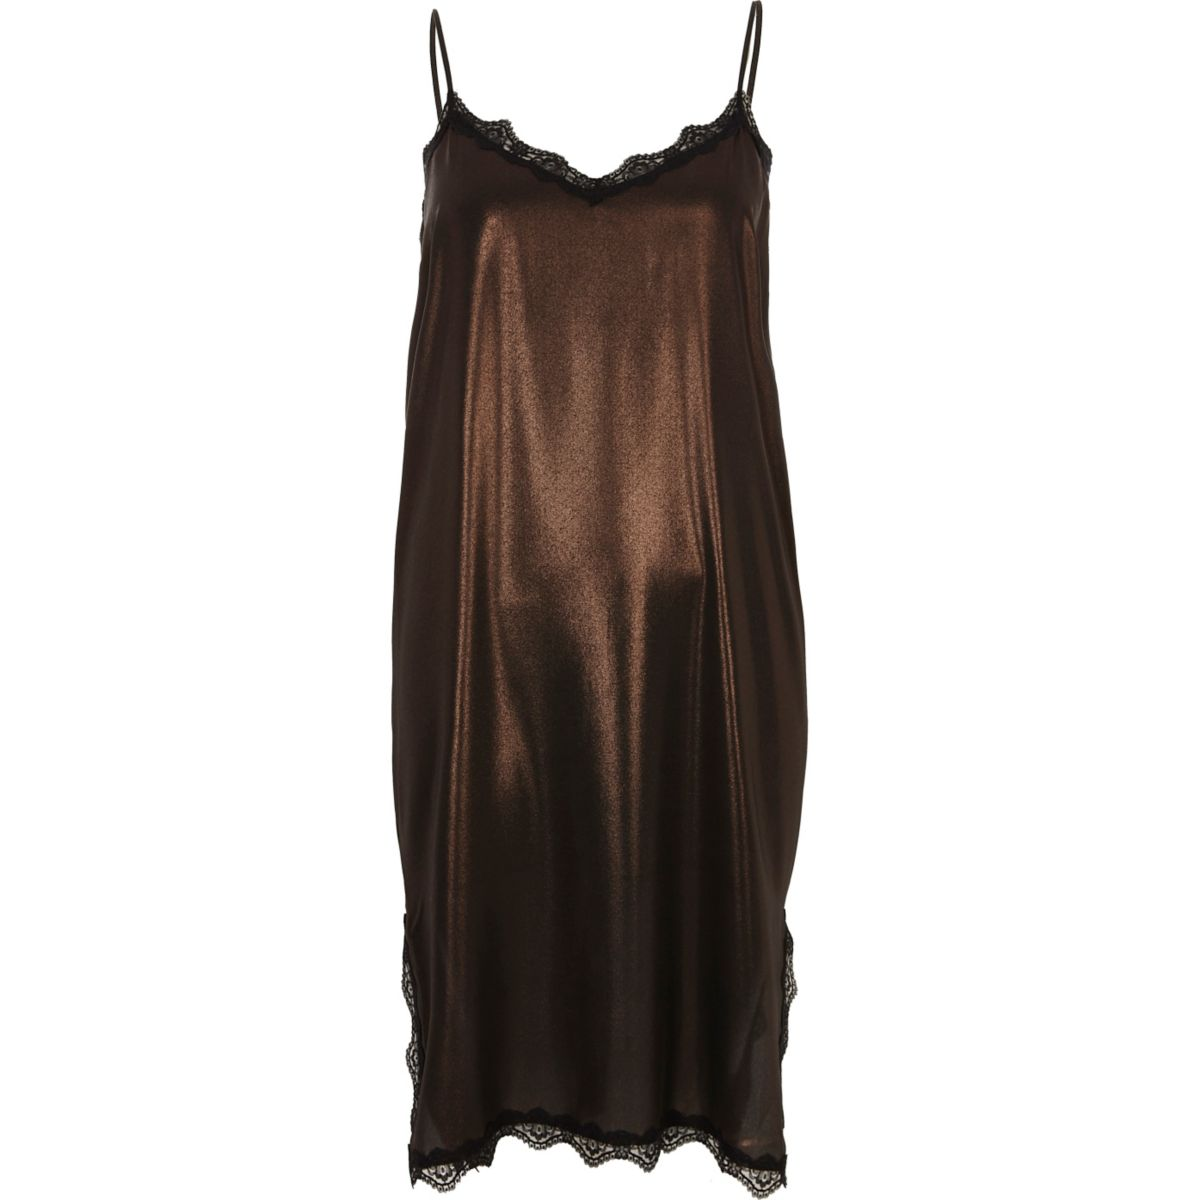 Bronze metallic lace trim midi slip dress